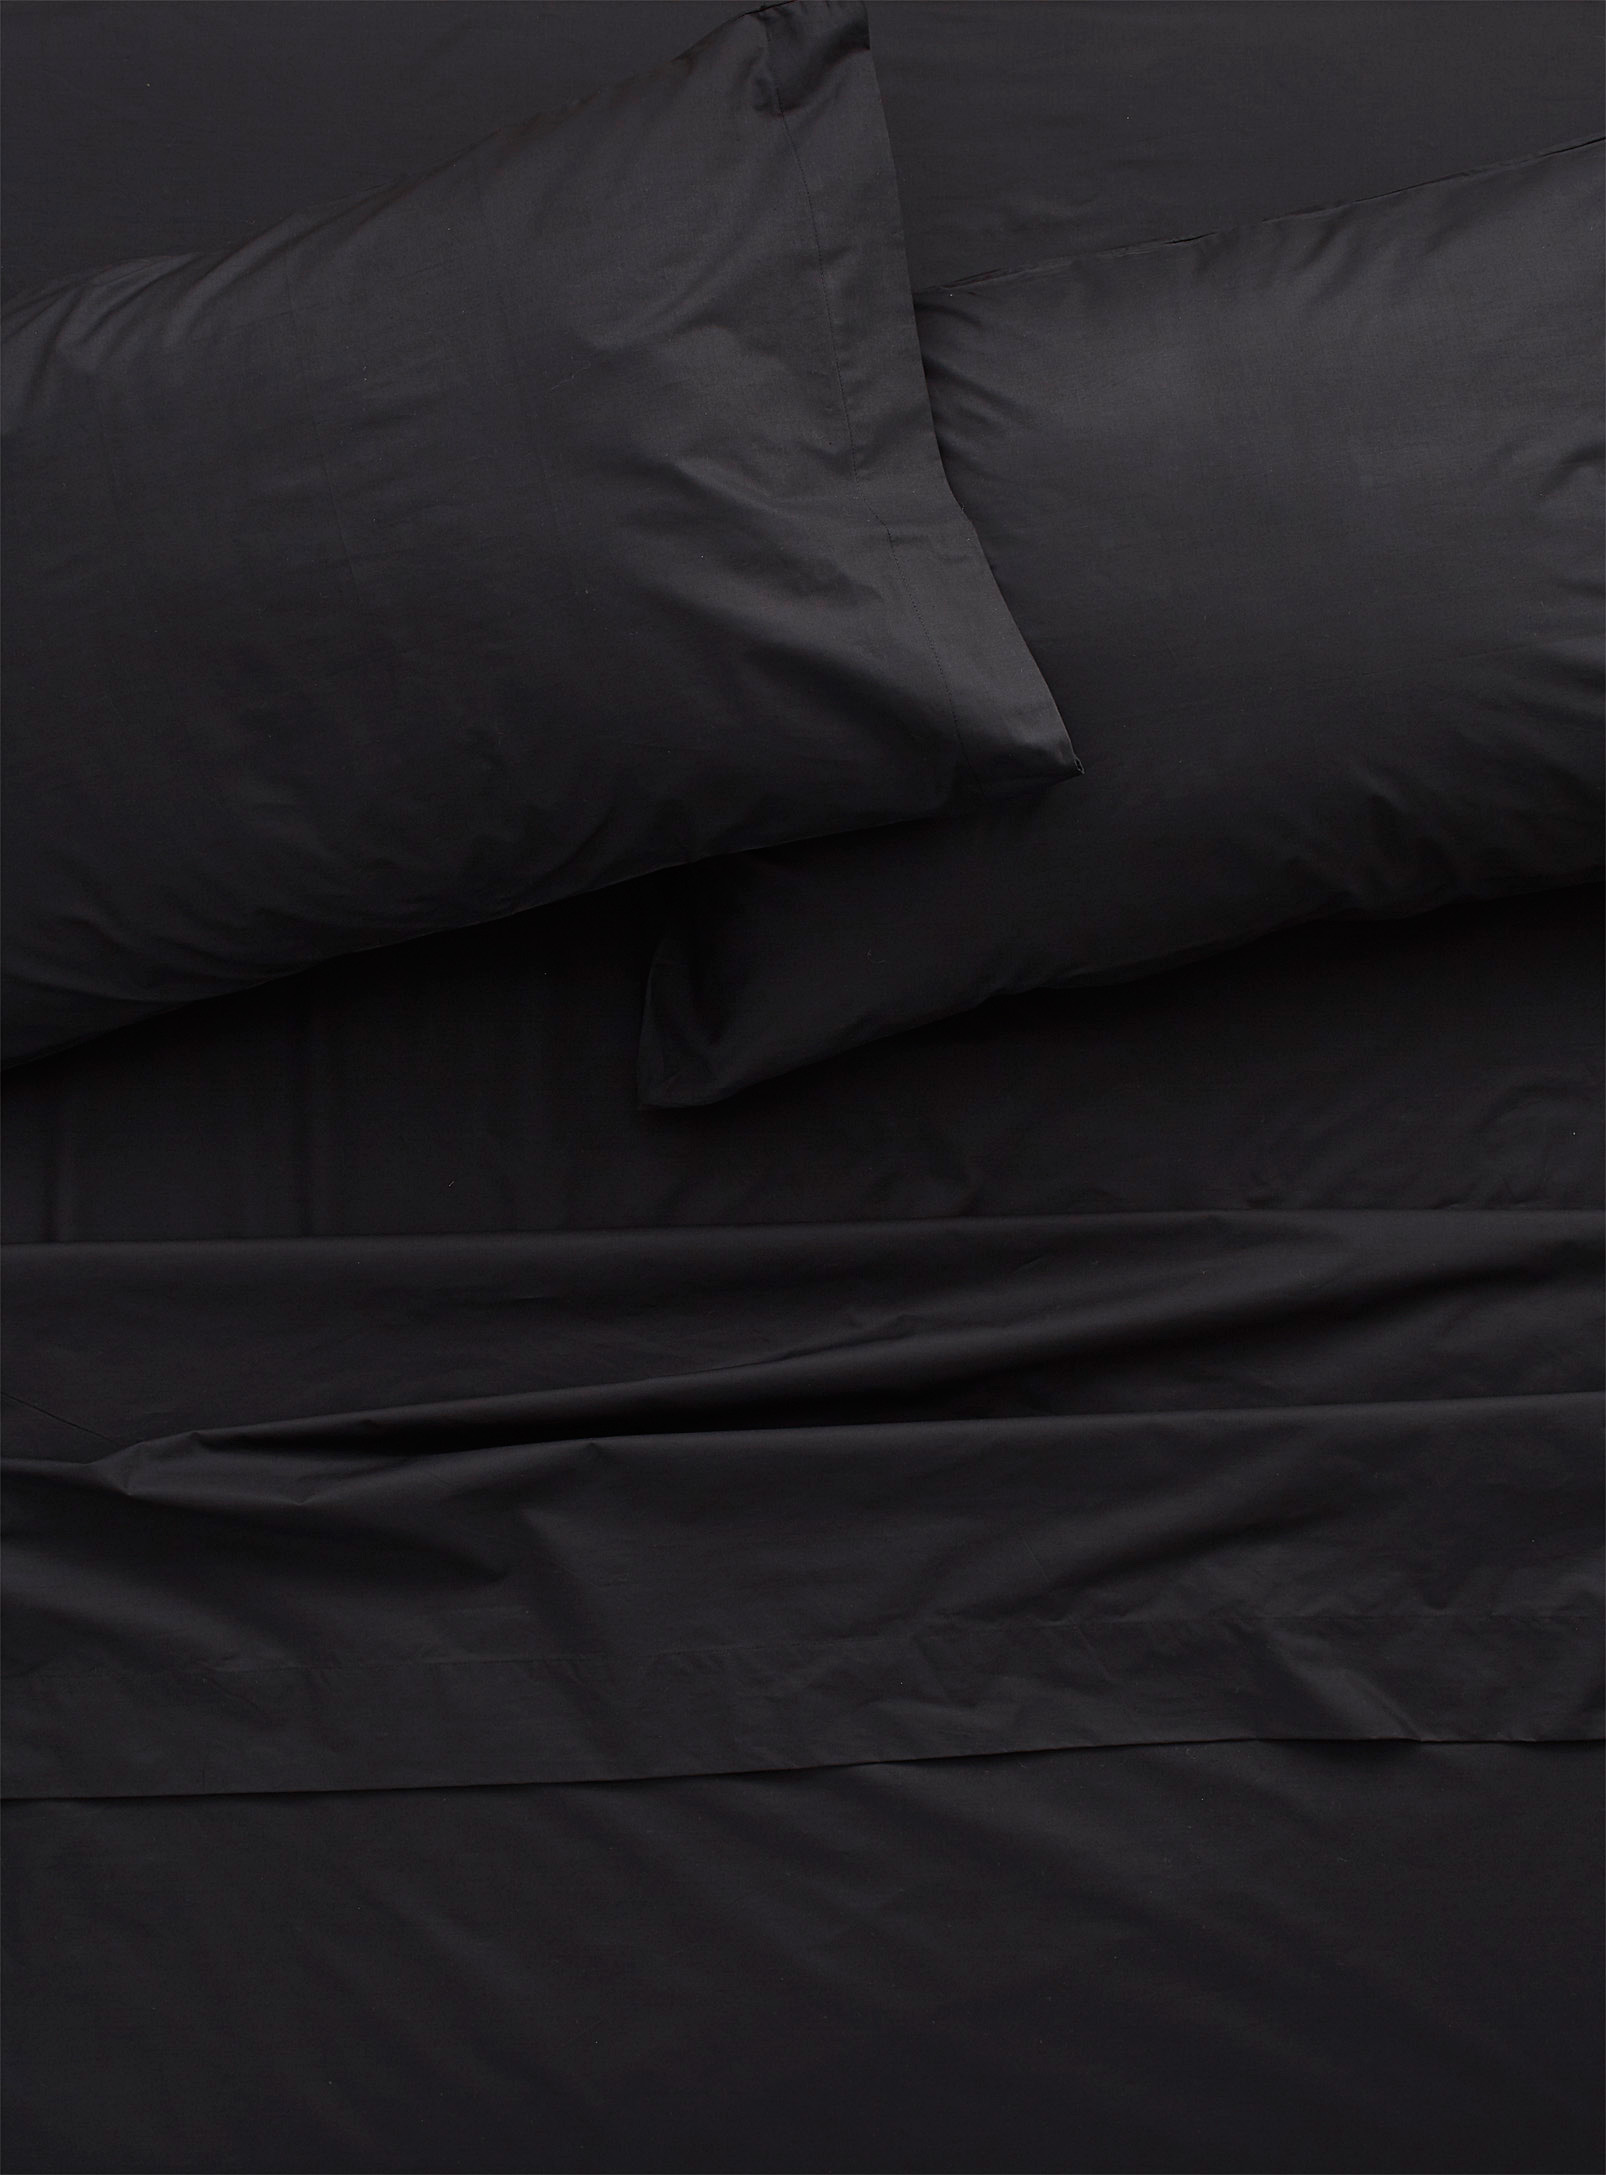 Simons - La Maison Simons Luxurious Percale Bed Sheets Black